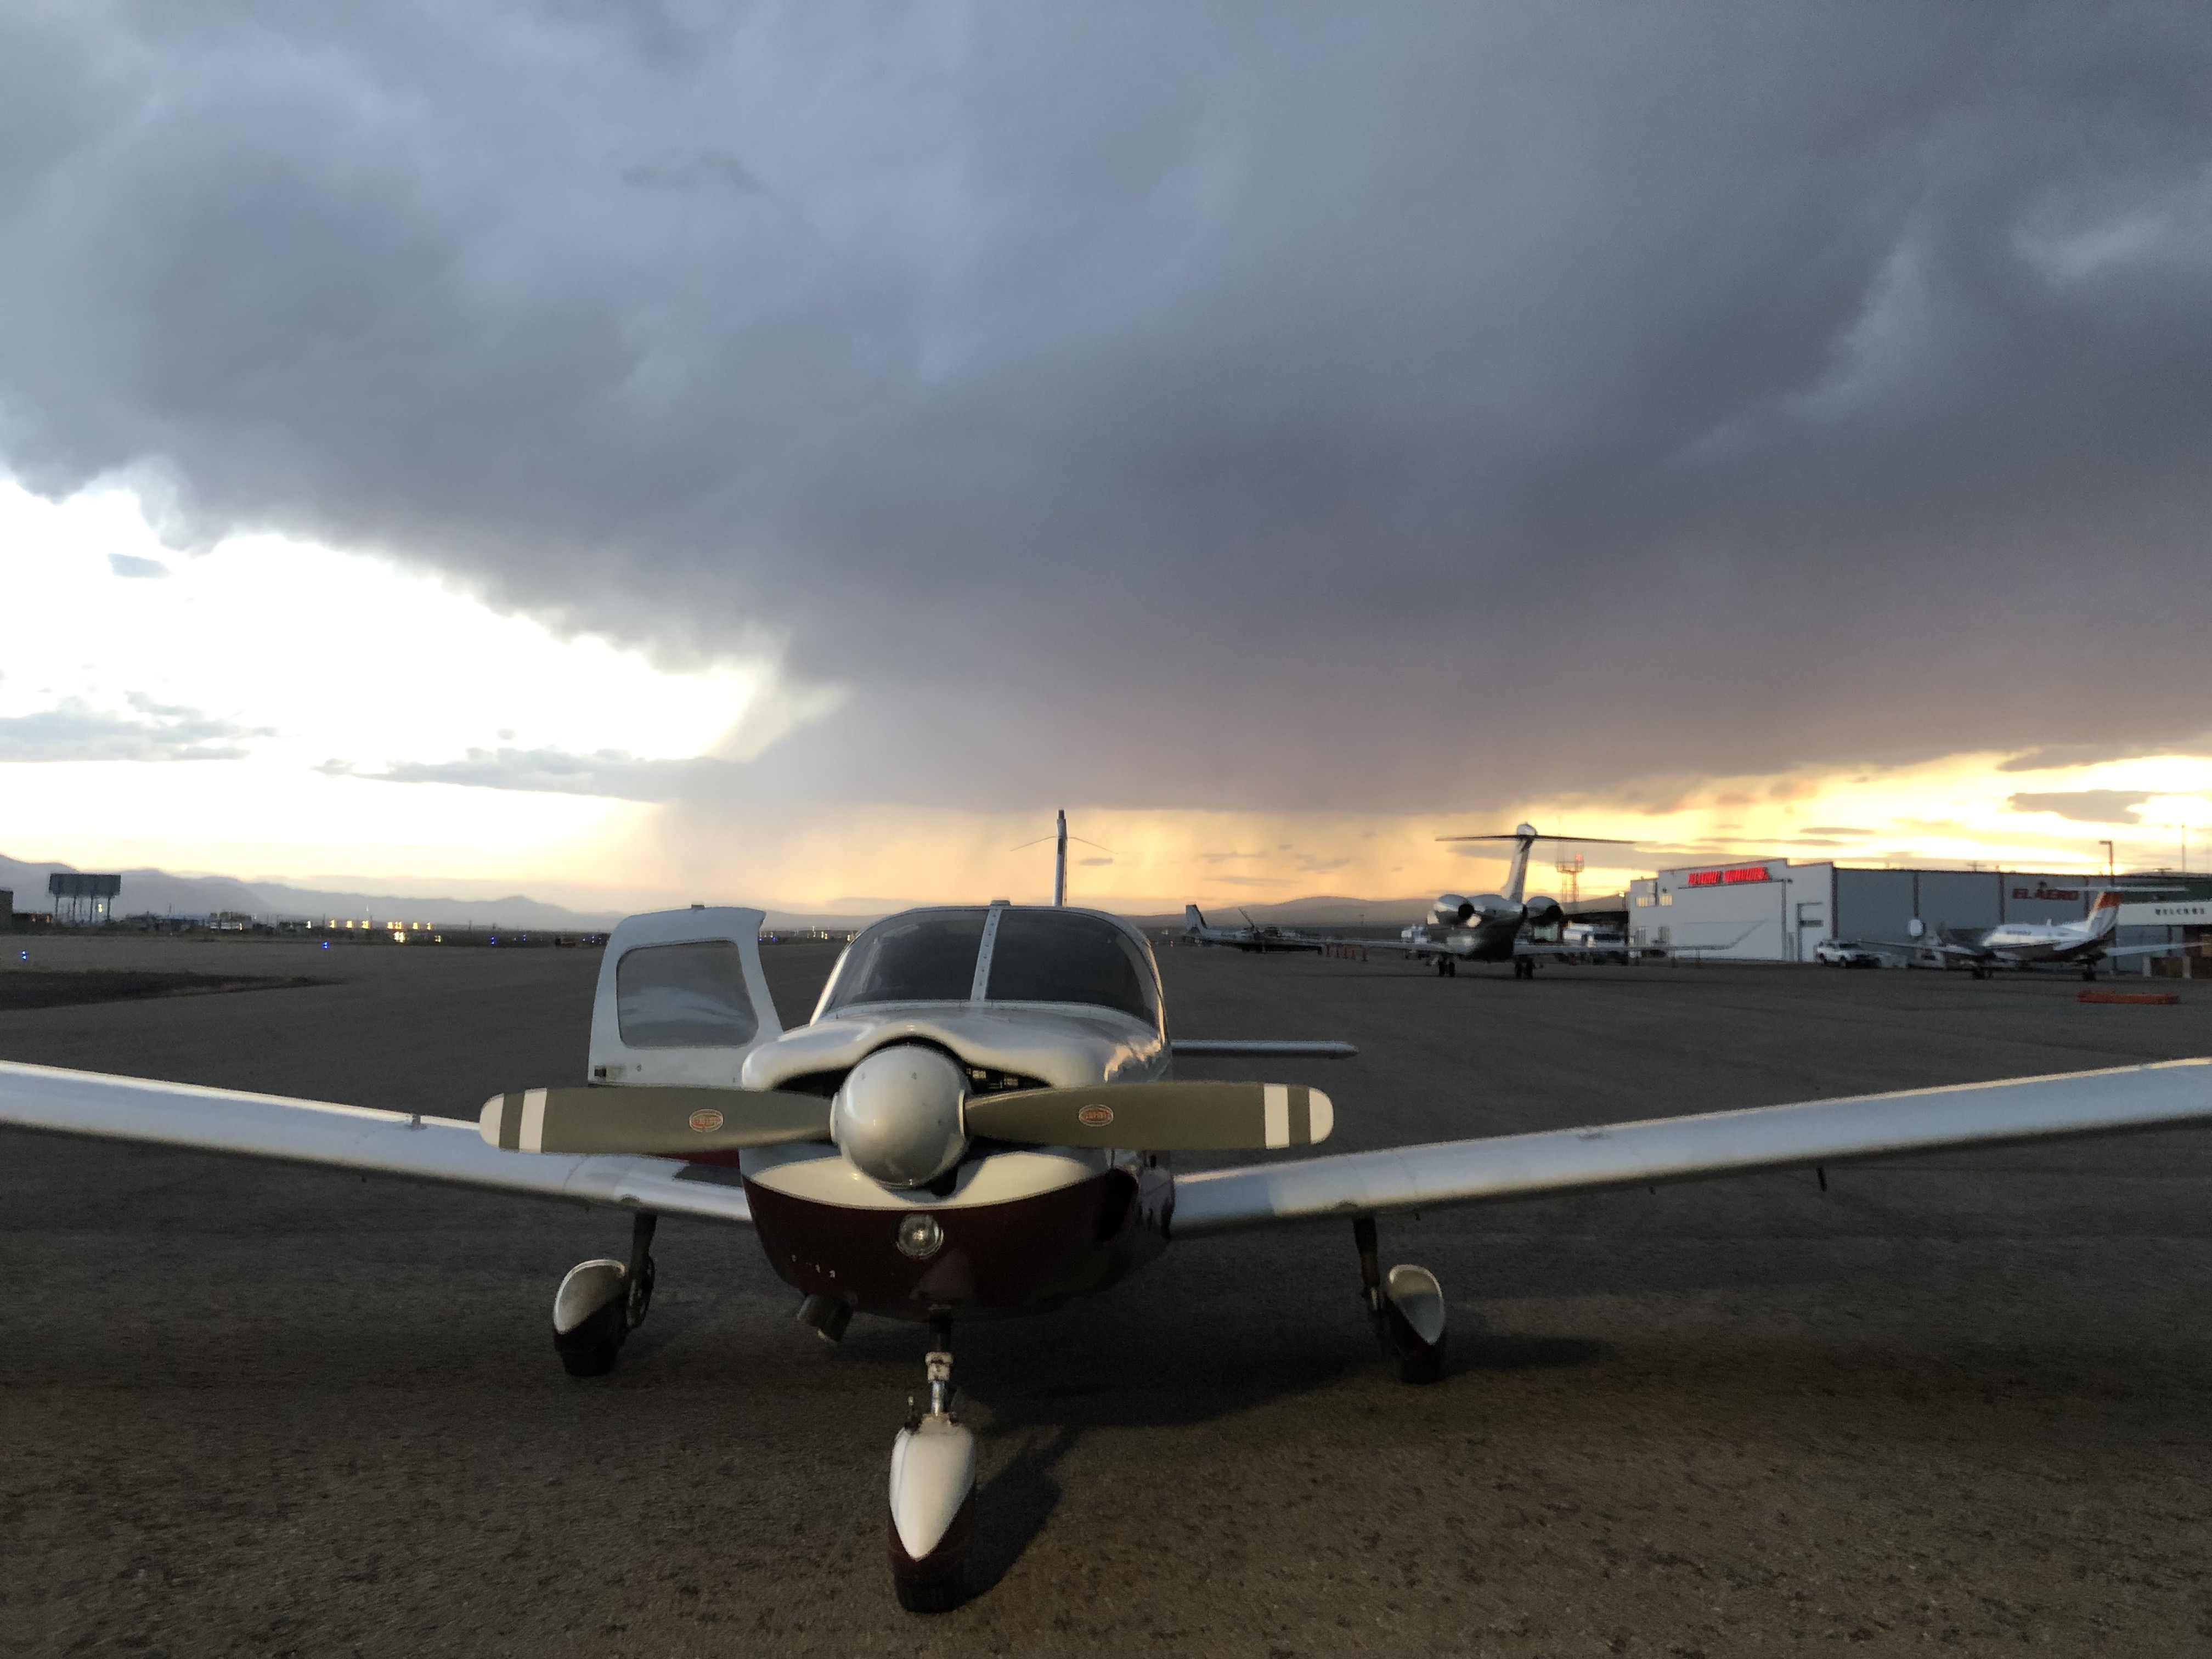 Landed at Elko, with storm in background